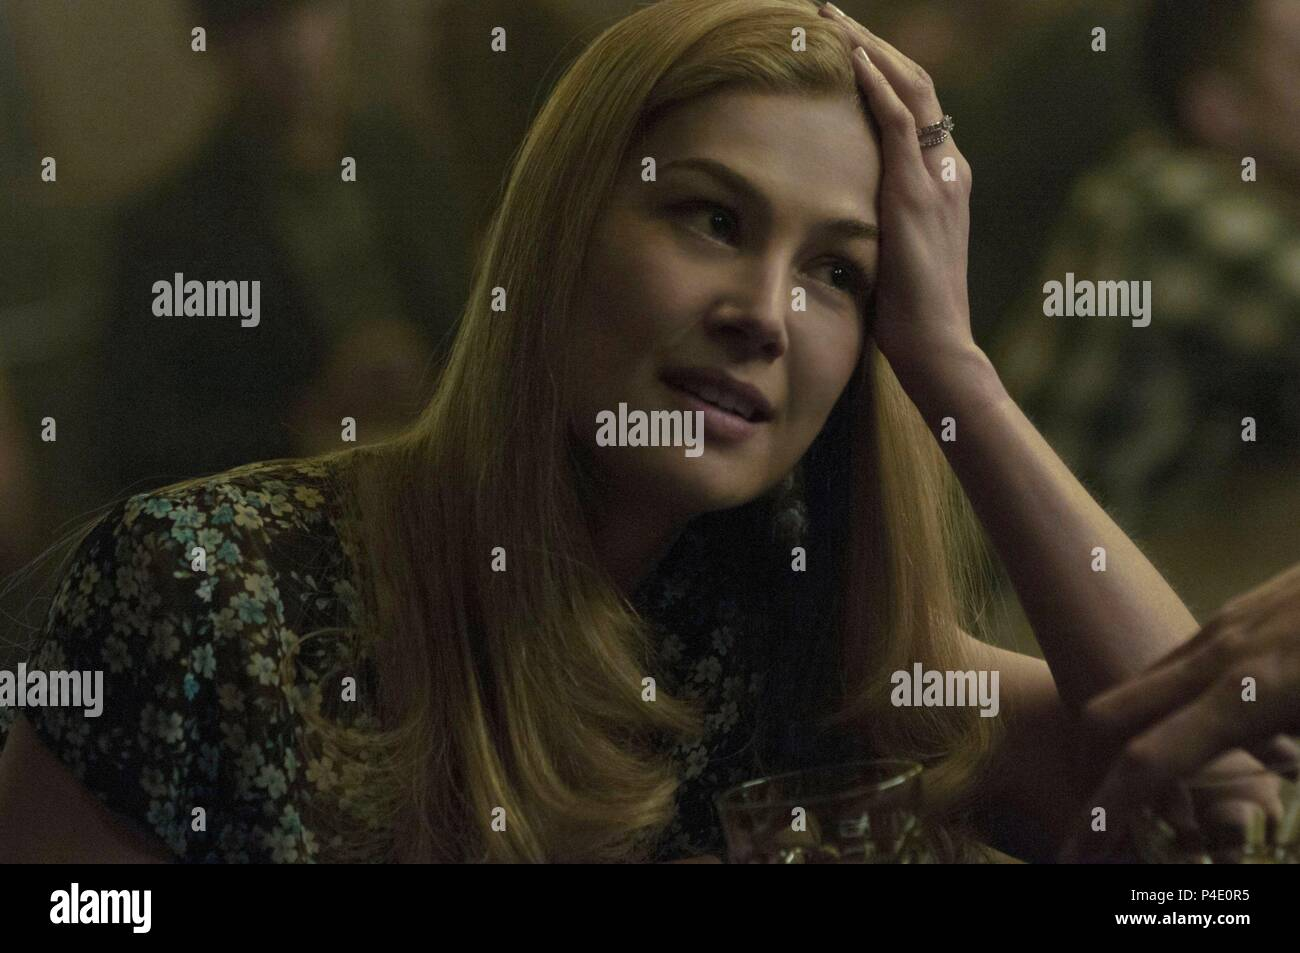 Original Film Title: GONE GIRL.  English Title: GONE GIRL.  Film Director: DAVID FINCHER.  Year: 2014.  Stars: ROSAMUND PIKE. Credit: NEW REGENCY PICTURES / Album - Stock Image